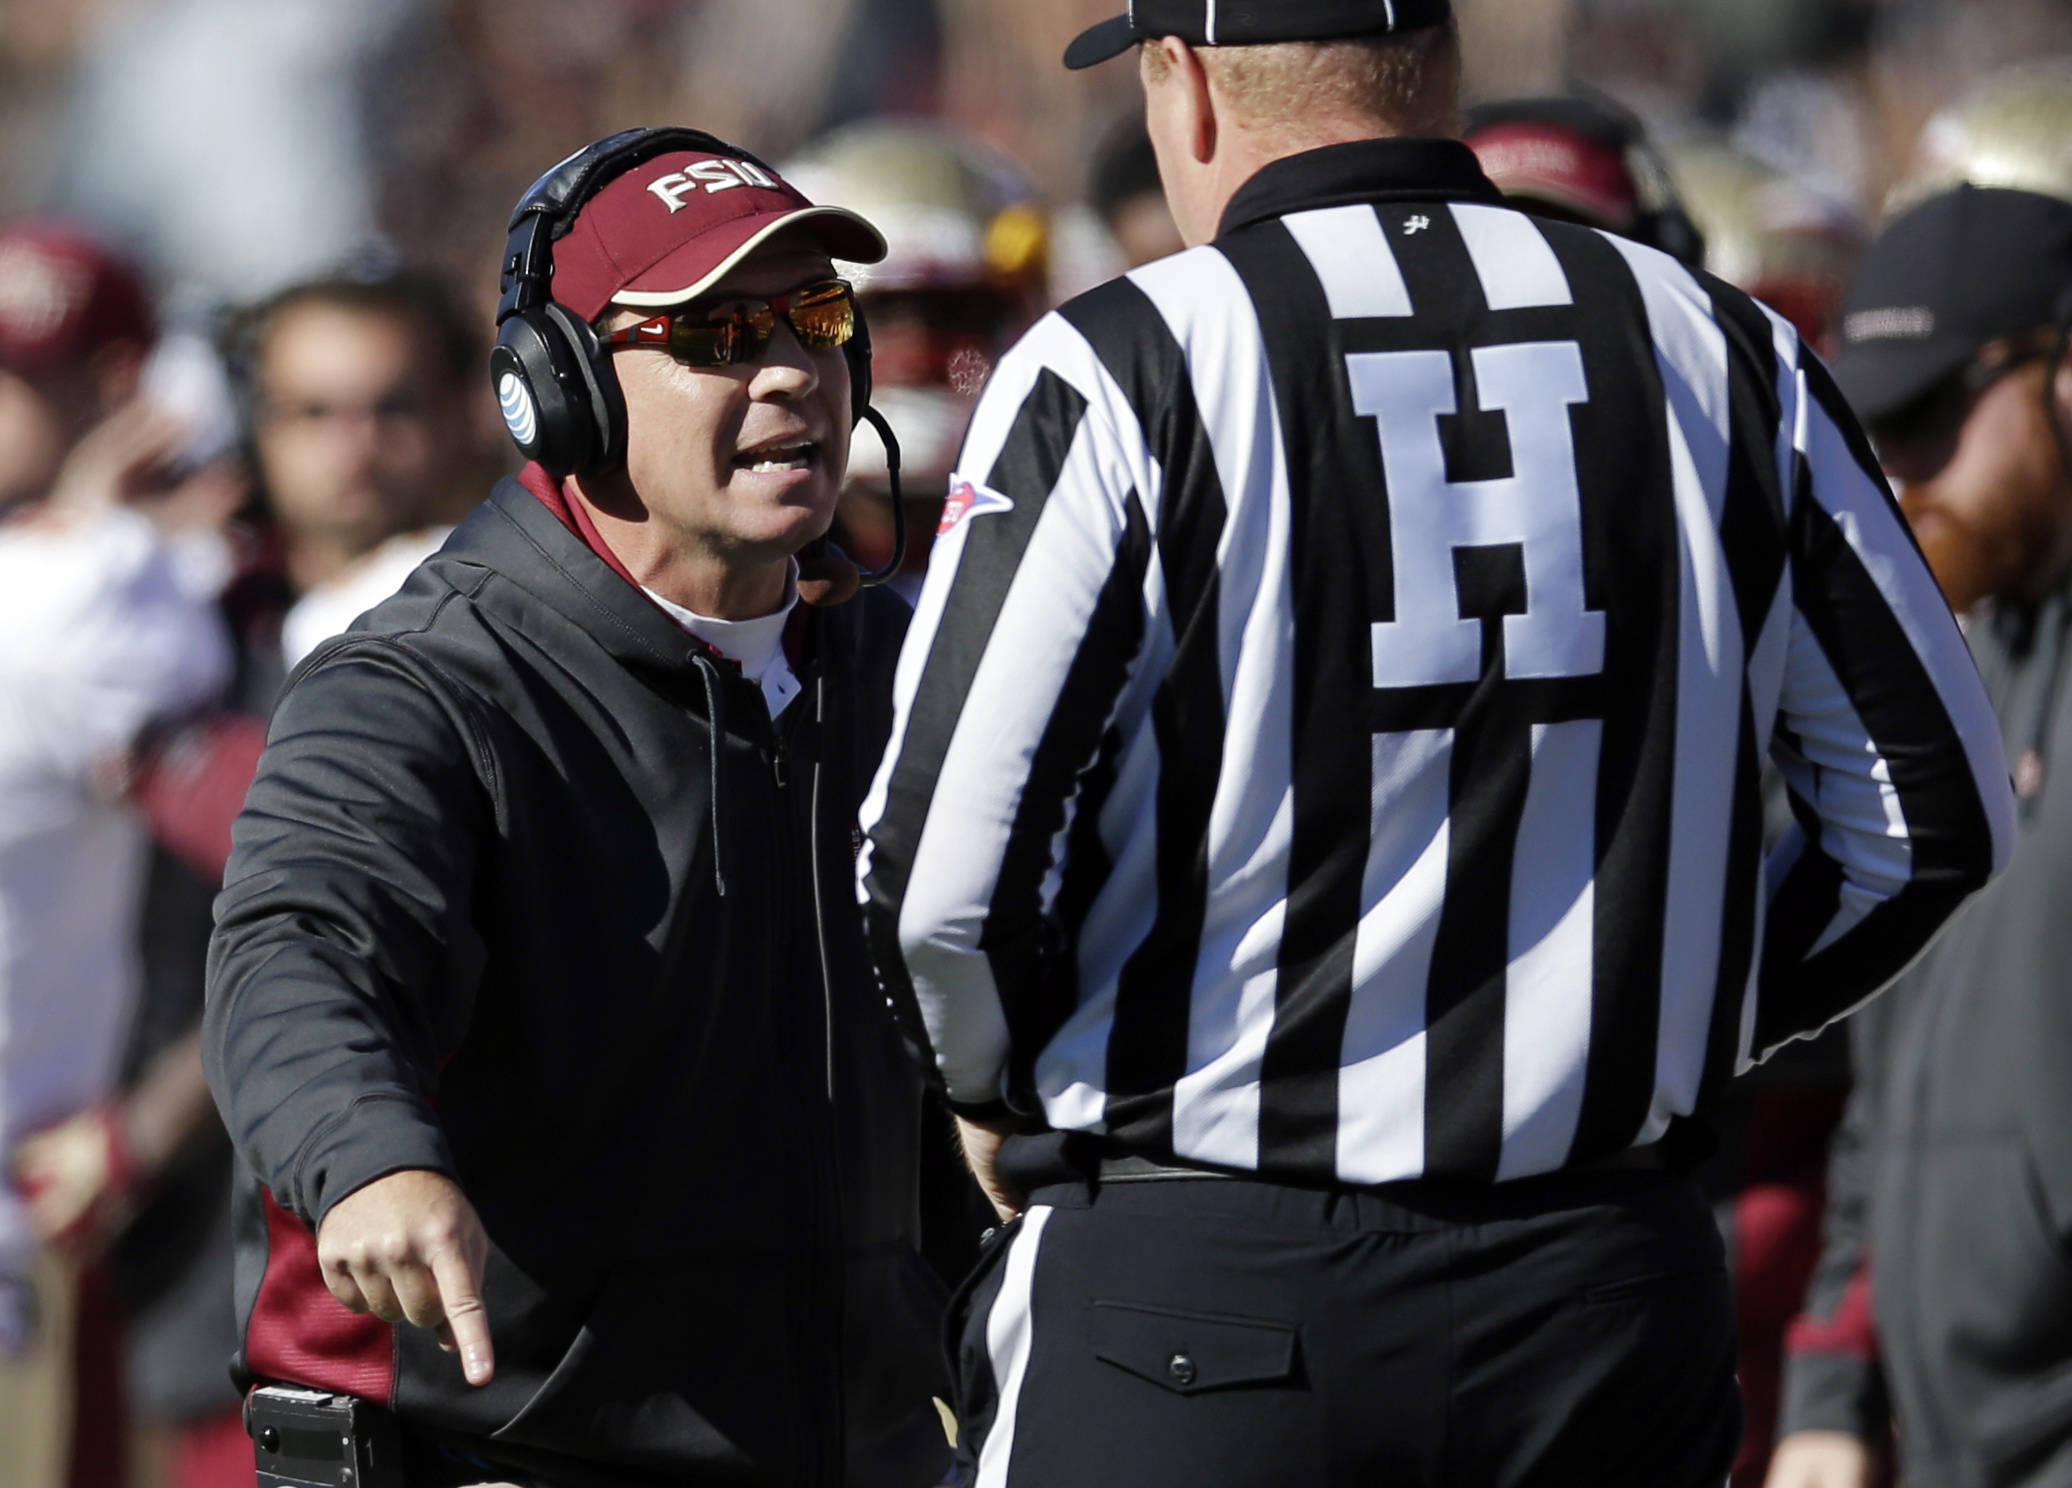 Head coach Jimbo Fisher speaks with head linesman Michael Kelley in the first half of an NCAA college football game against Maryland in College Park, Md., Saturday, Nov. 17, 2012. (AP Photo/Patrick Semansky)